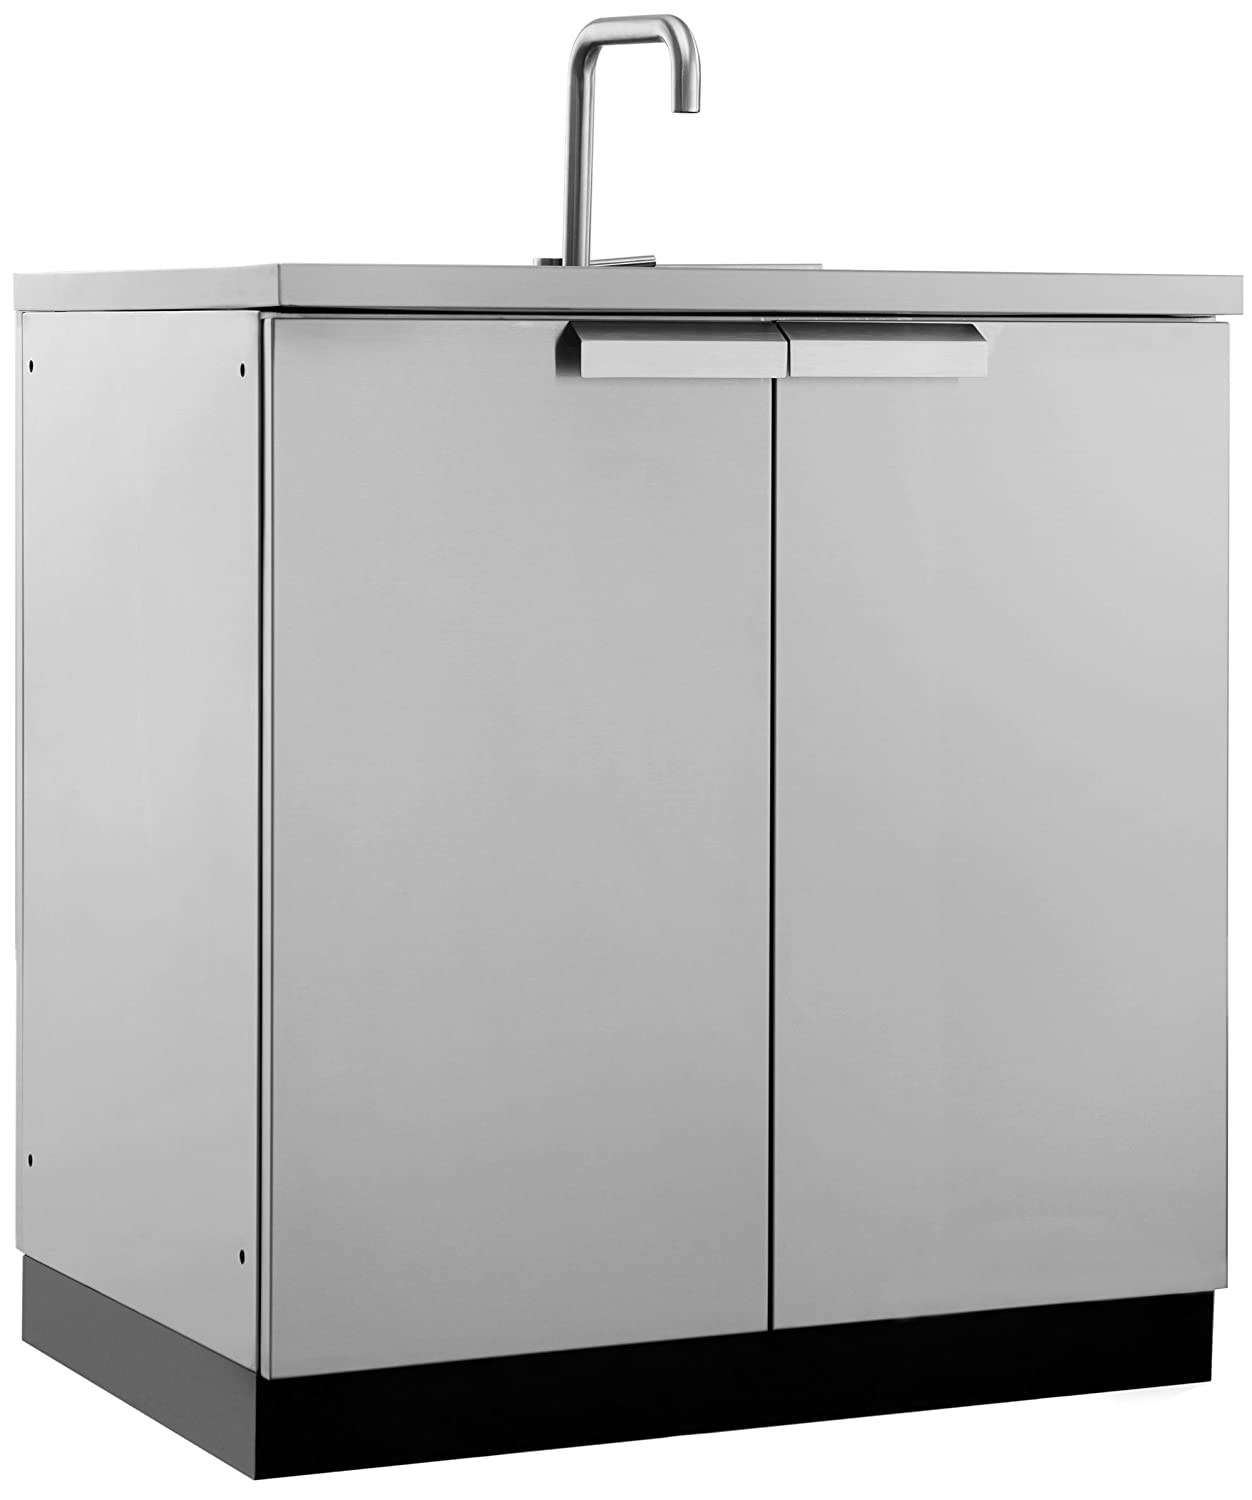 Newage Products Inc 65001 Newage Products Outdoor Kitchen Storage Sink Cabinet Stainless Steel